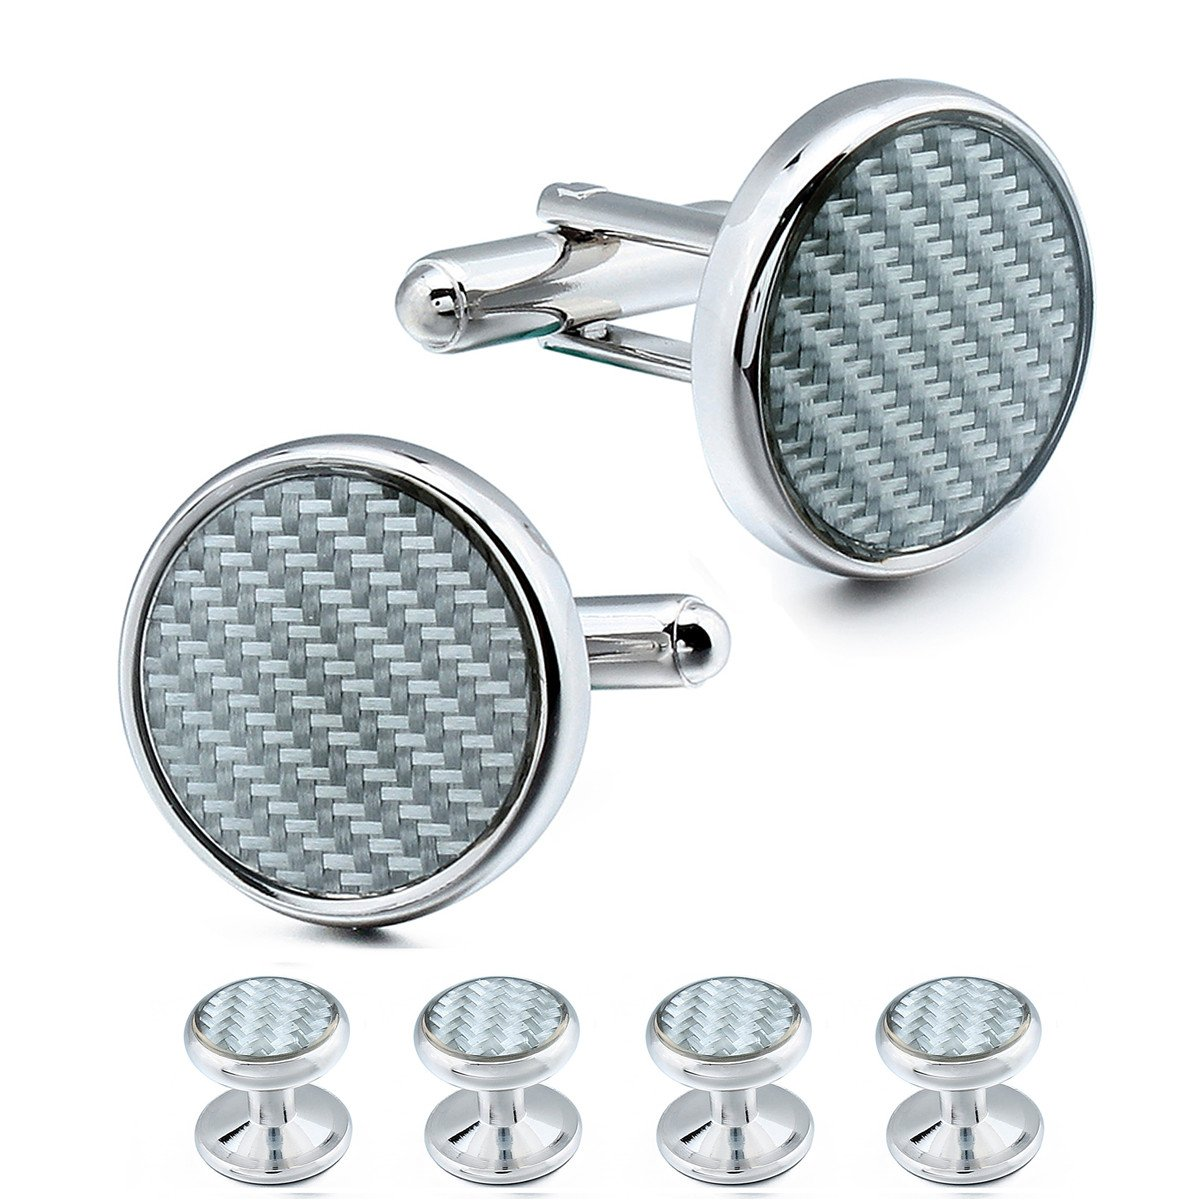 Wedding Accessories for Men's Shirts Jewelry Cuff Links and 4 Studs Cuff Button with Box 40017